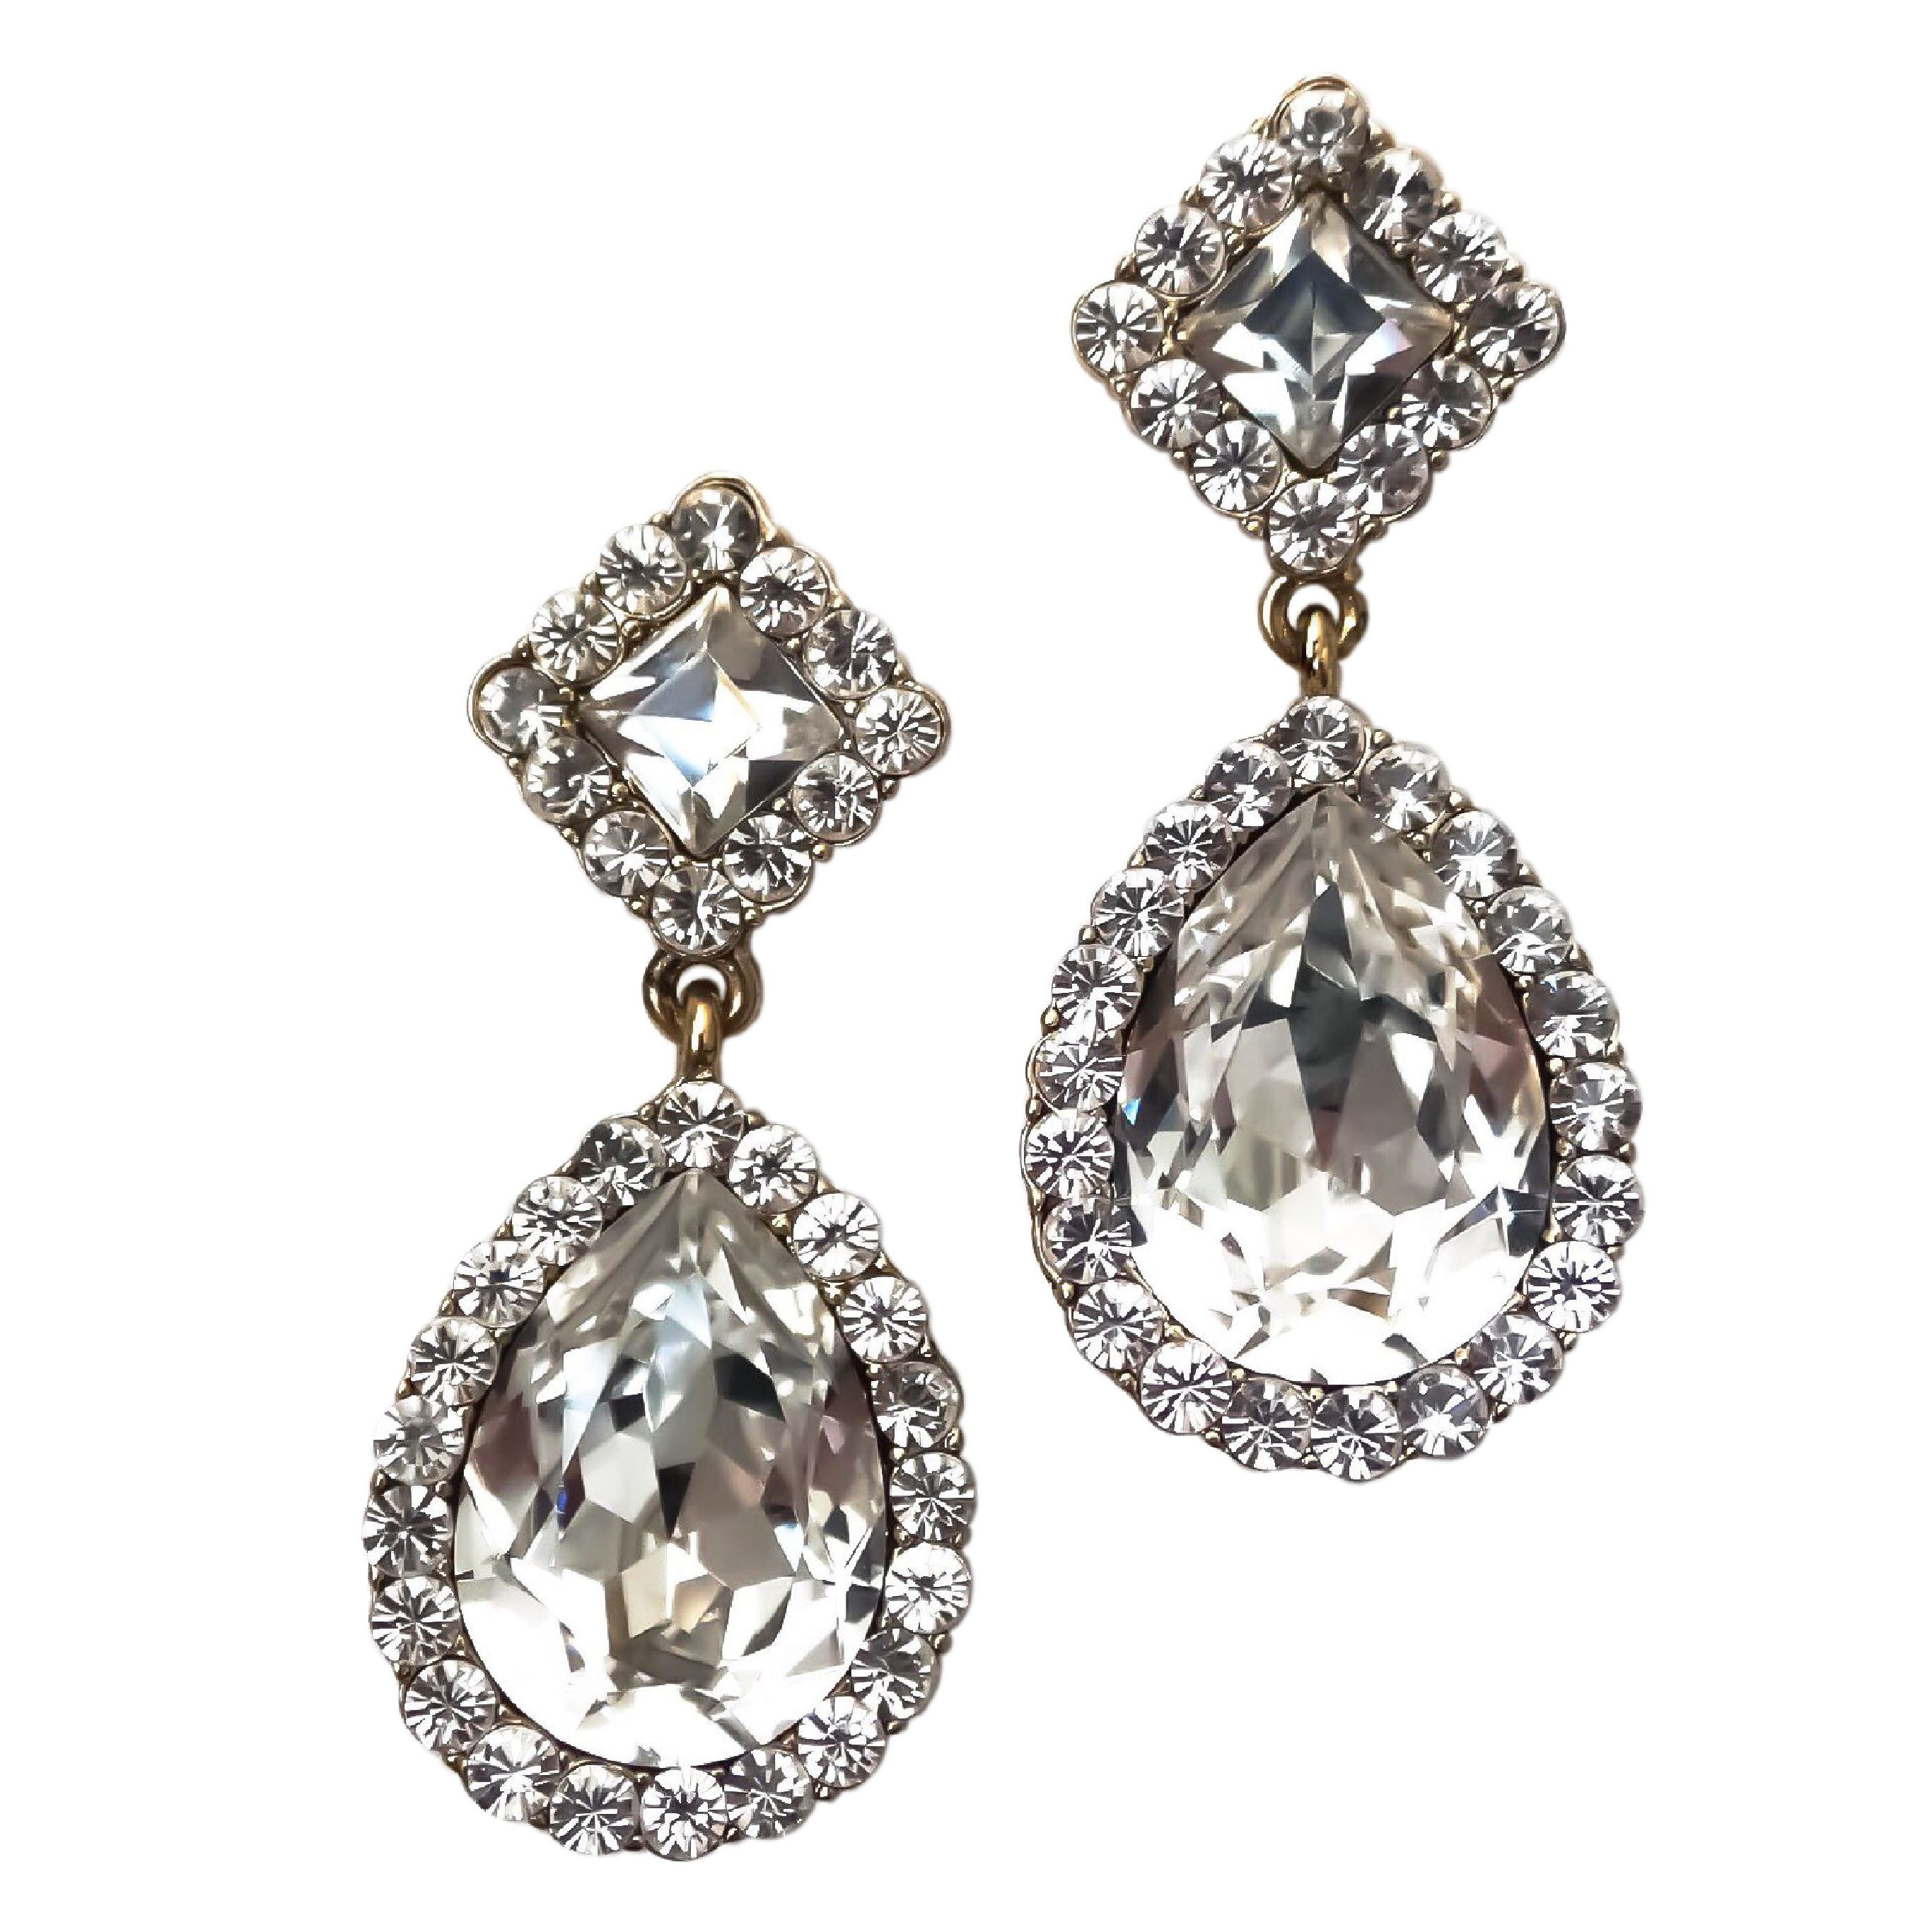 Earrings - ELIZABETH/CG